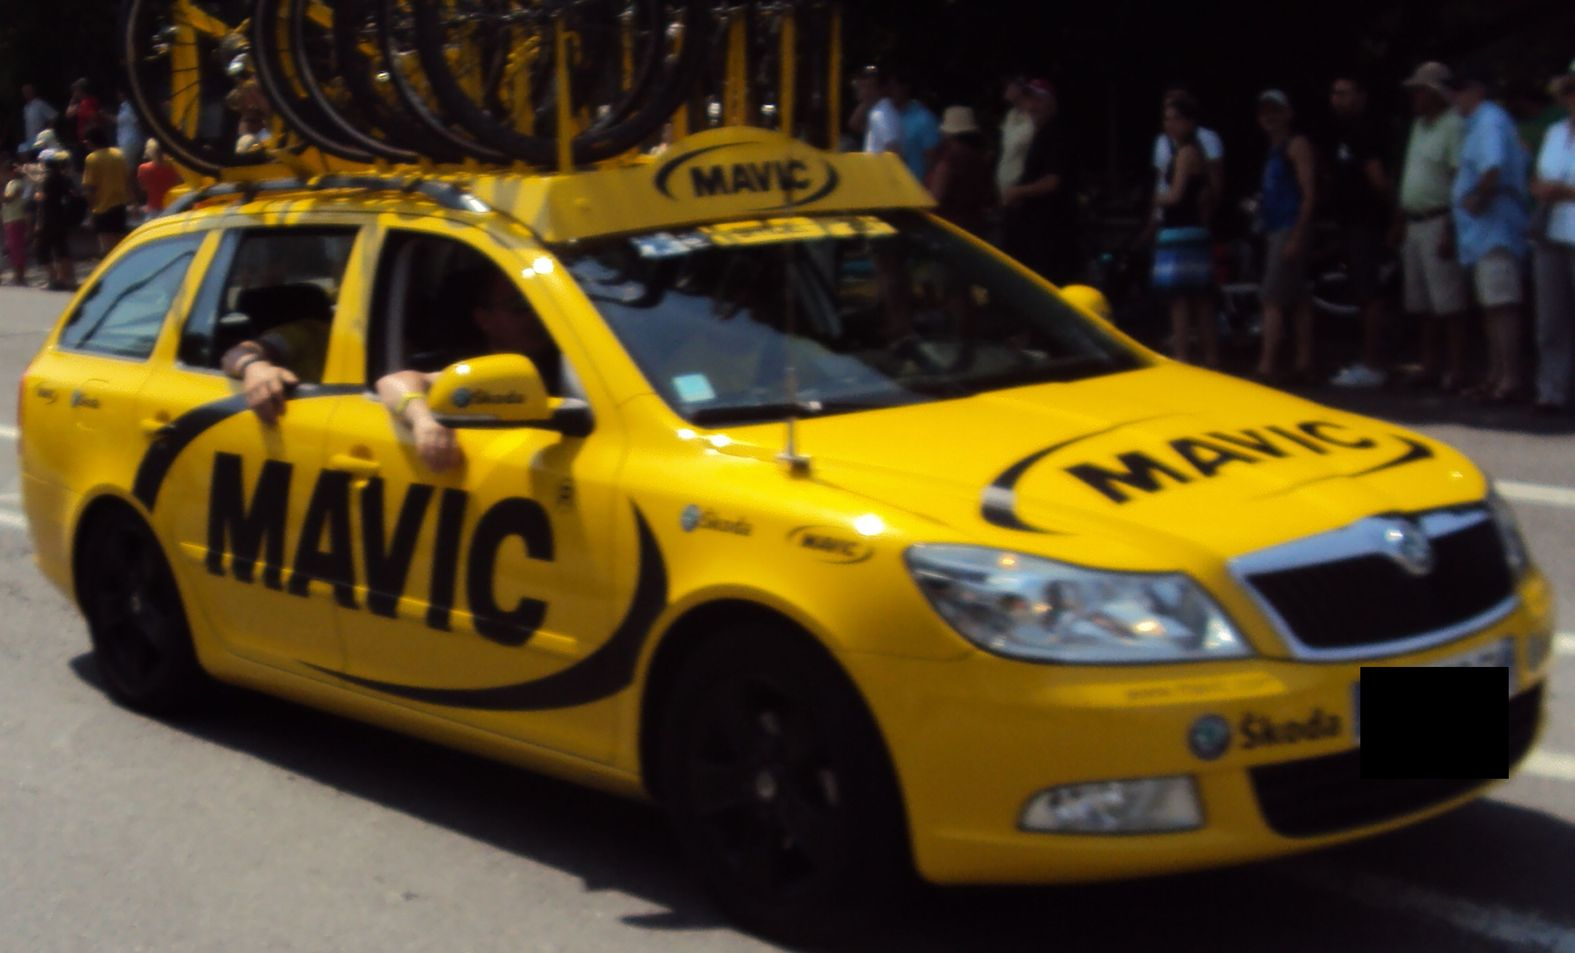 Skoda Au Tour De France Ete 2010 Mavic B